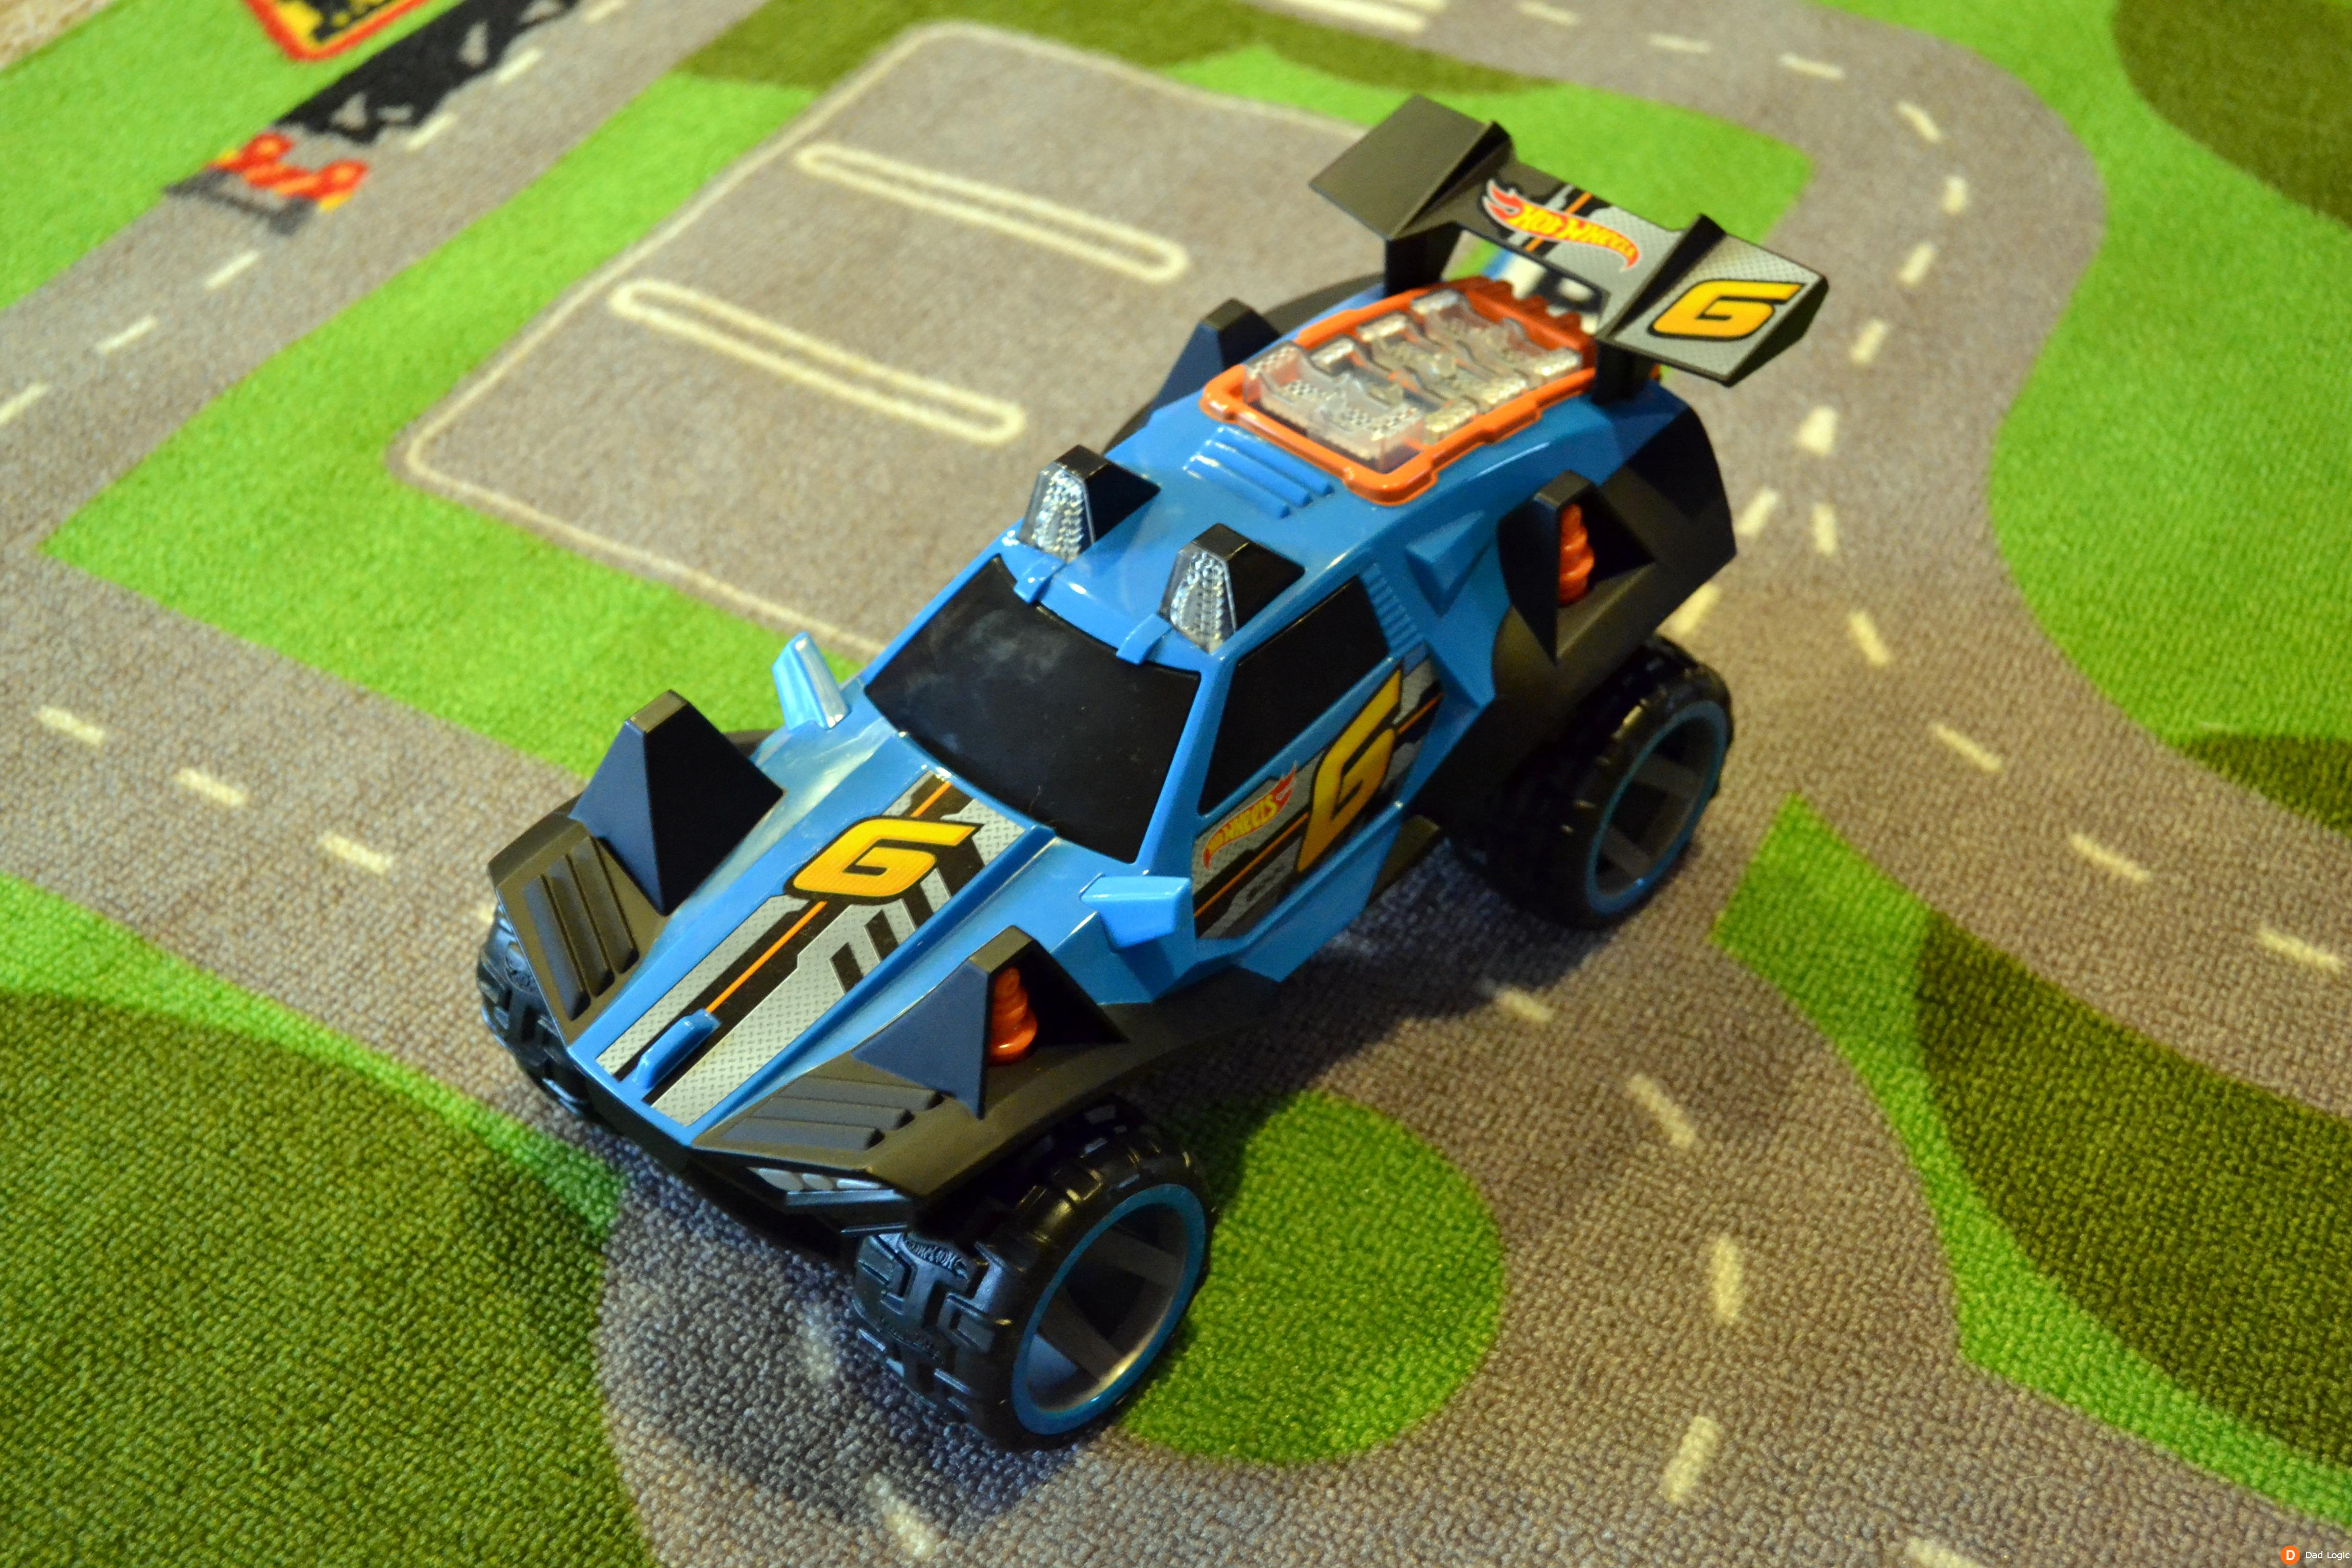 Get Ready For High Octane Fun With The Toy State Hot Wheels Engine Power R C Car Dad Logic